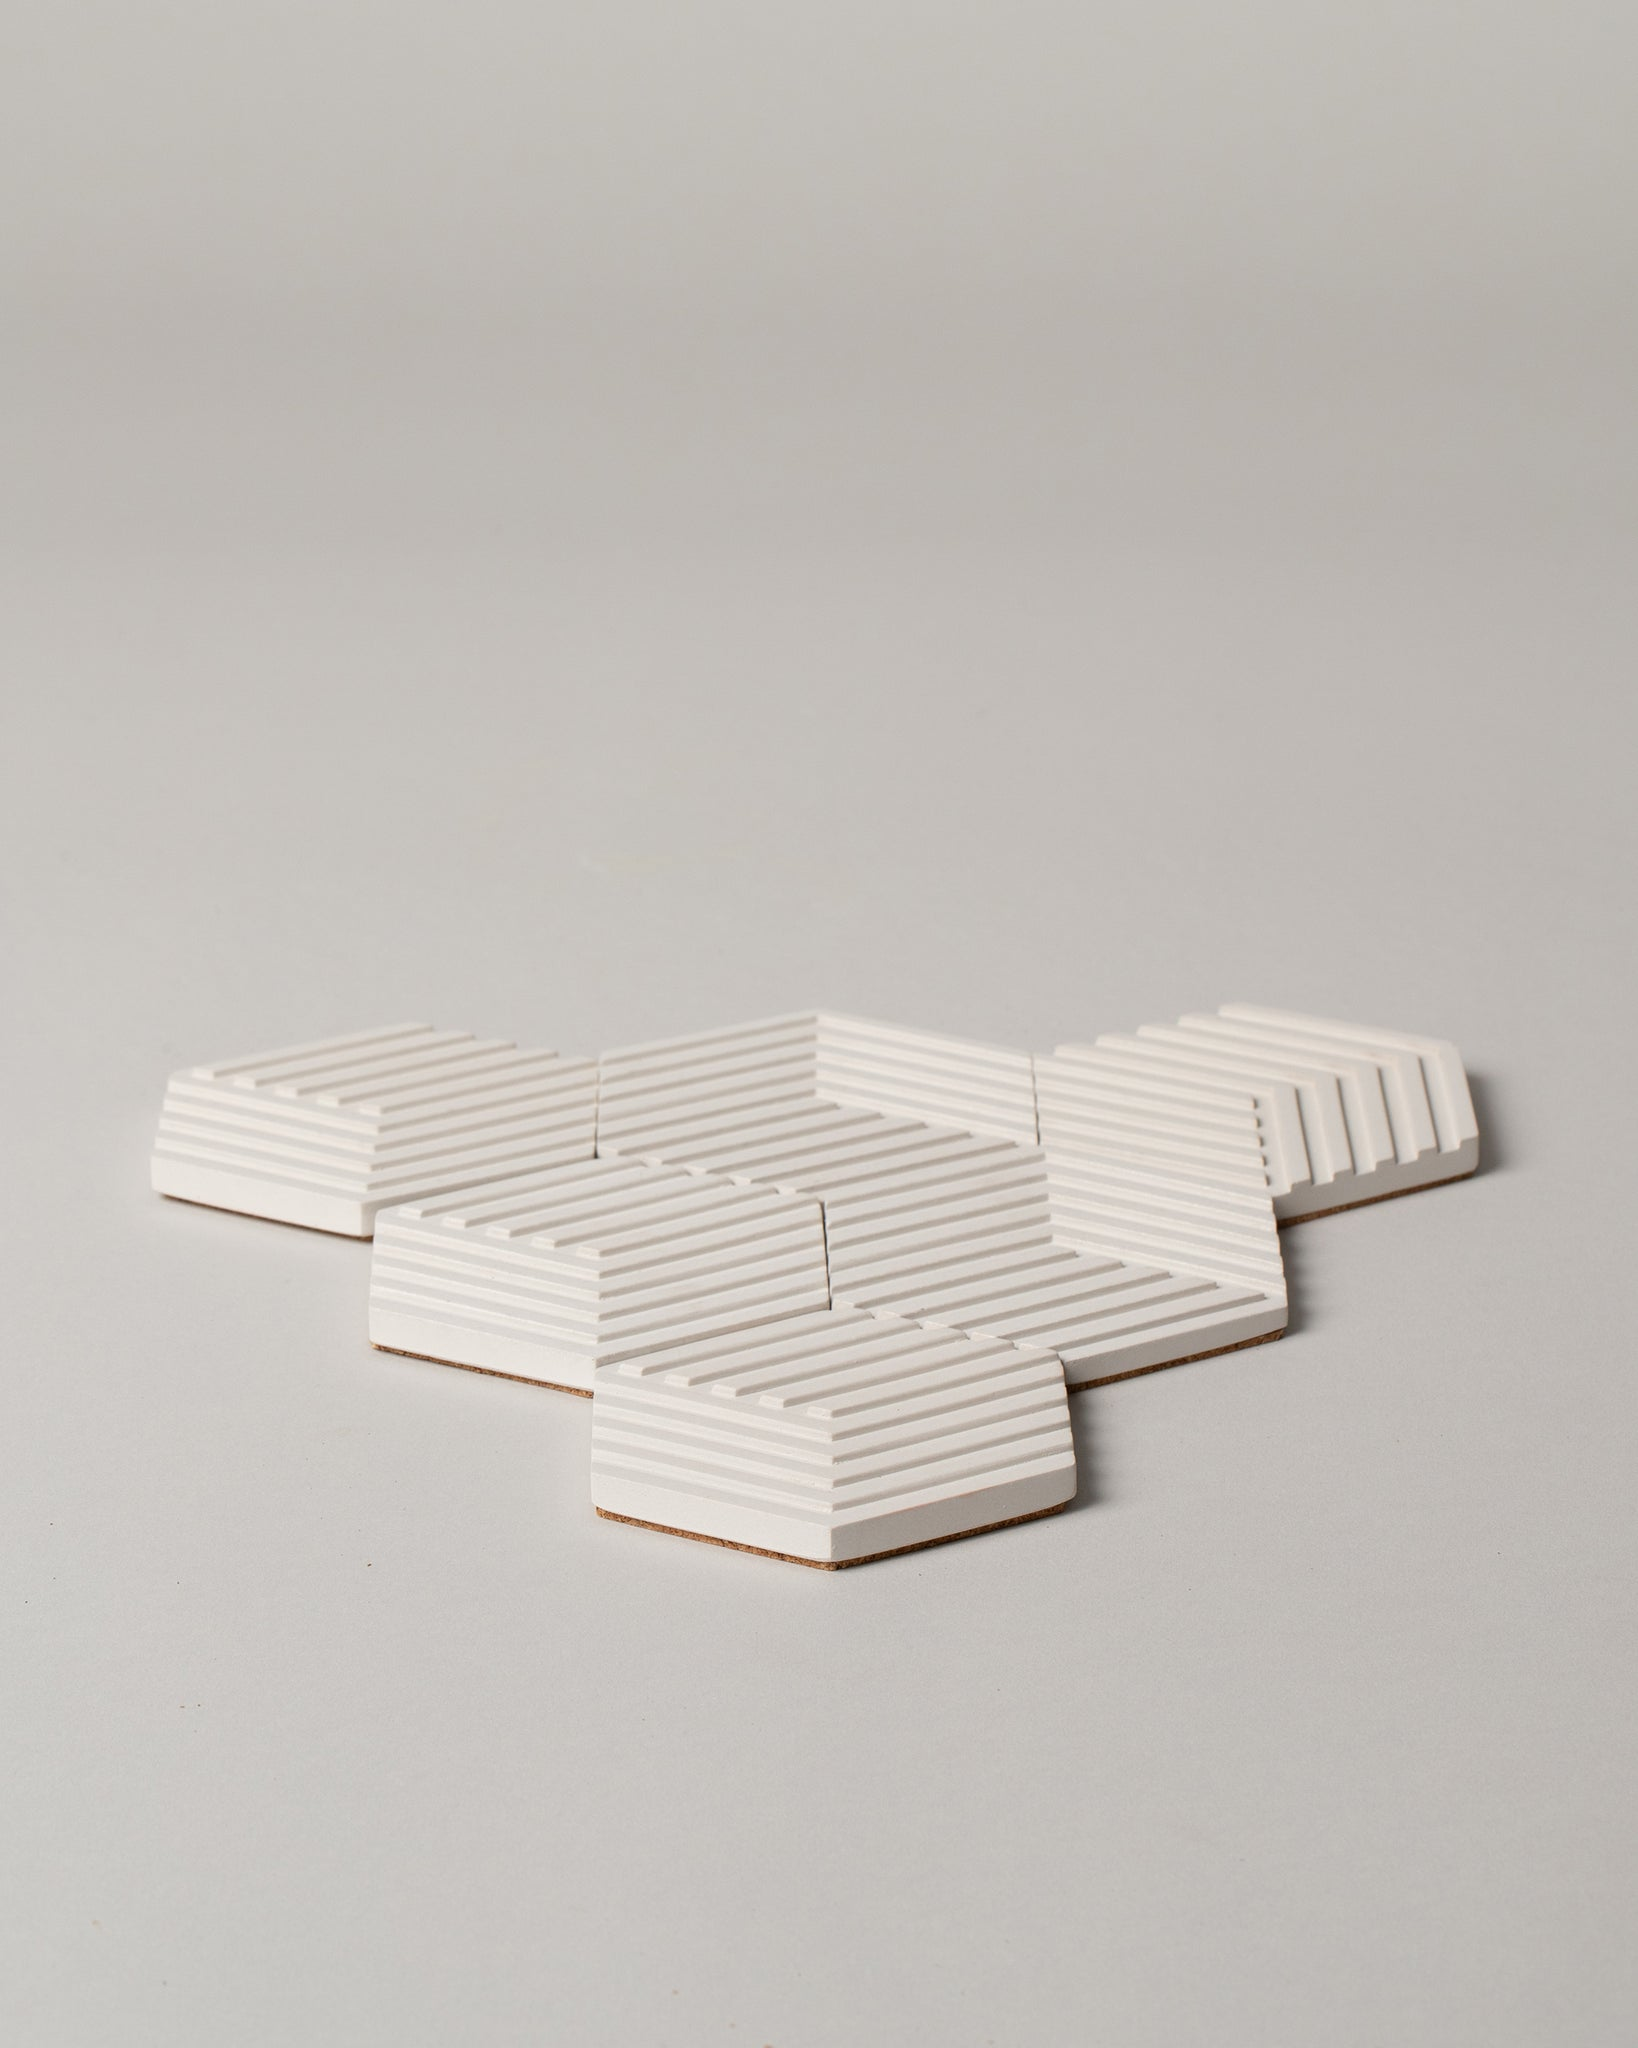 Table Tile Concrete Coasters in Natural White